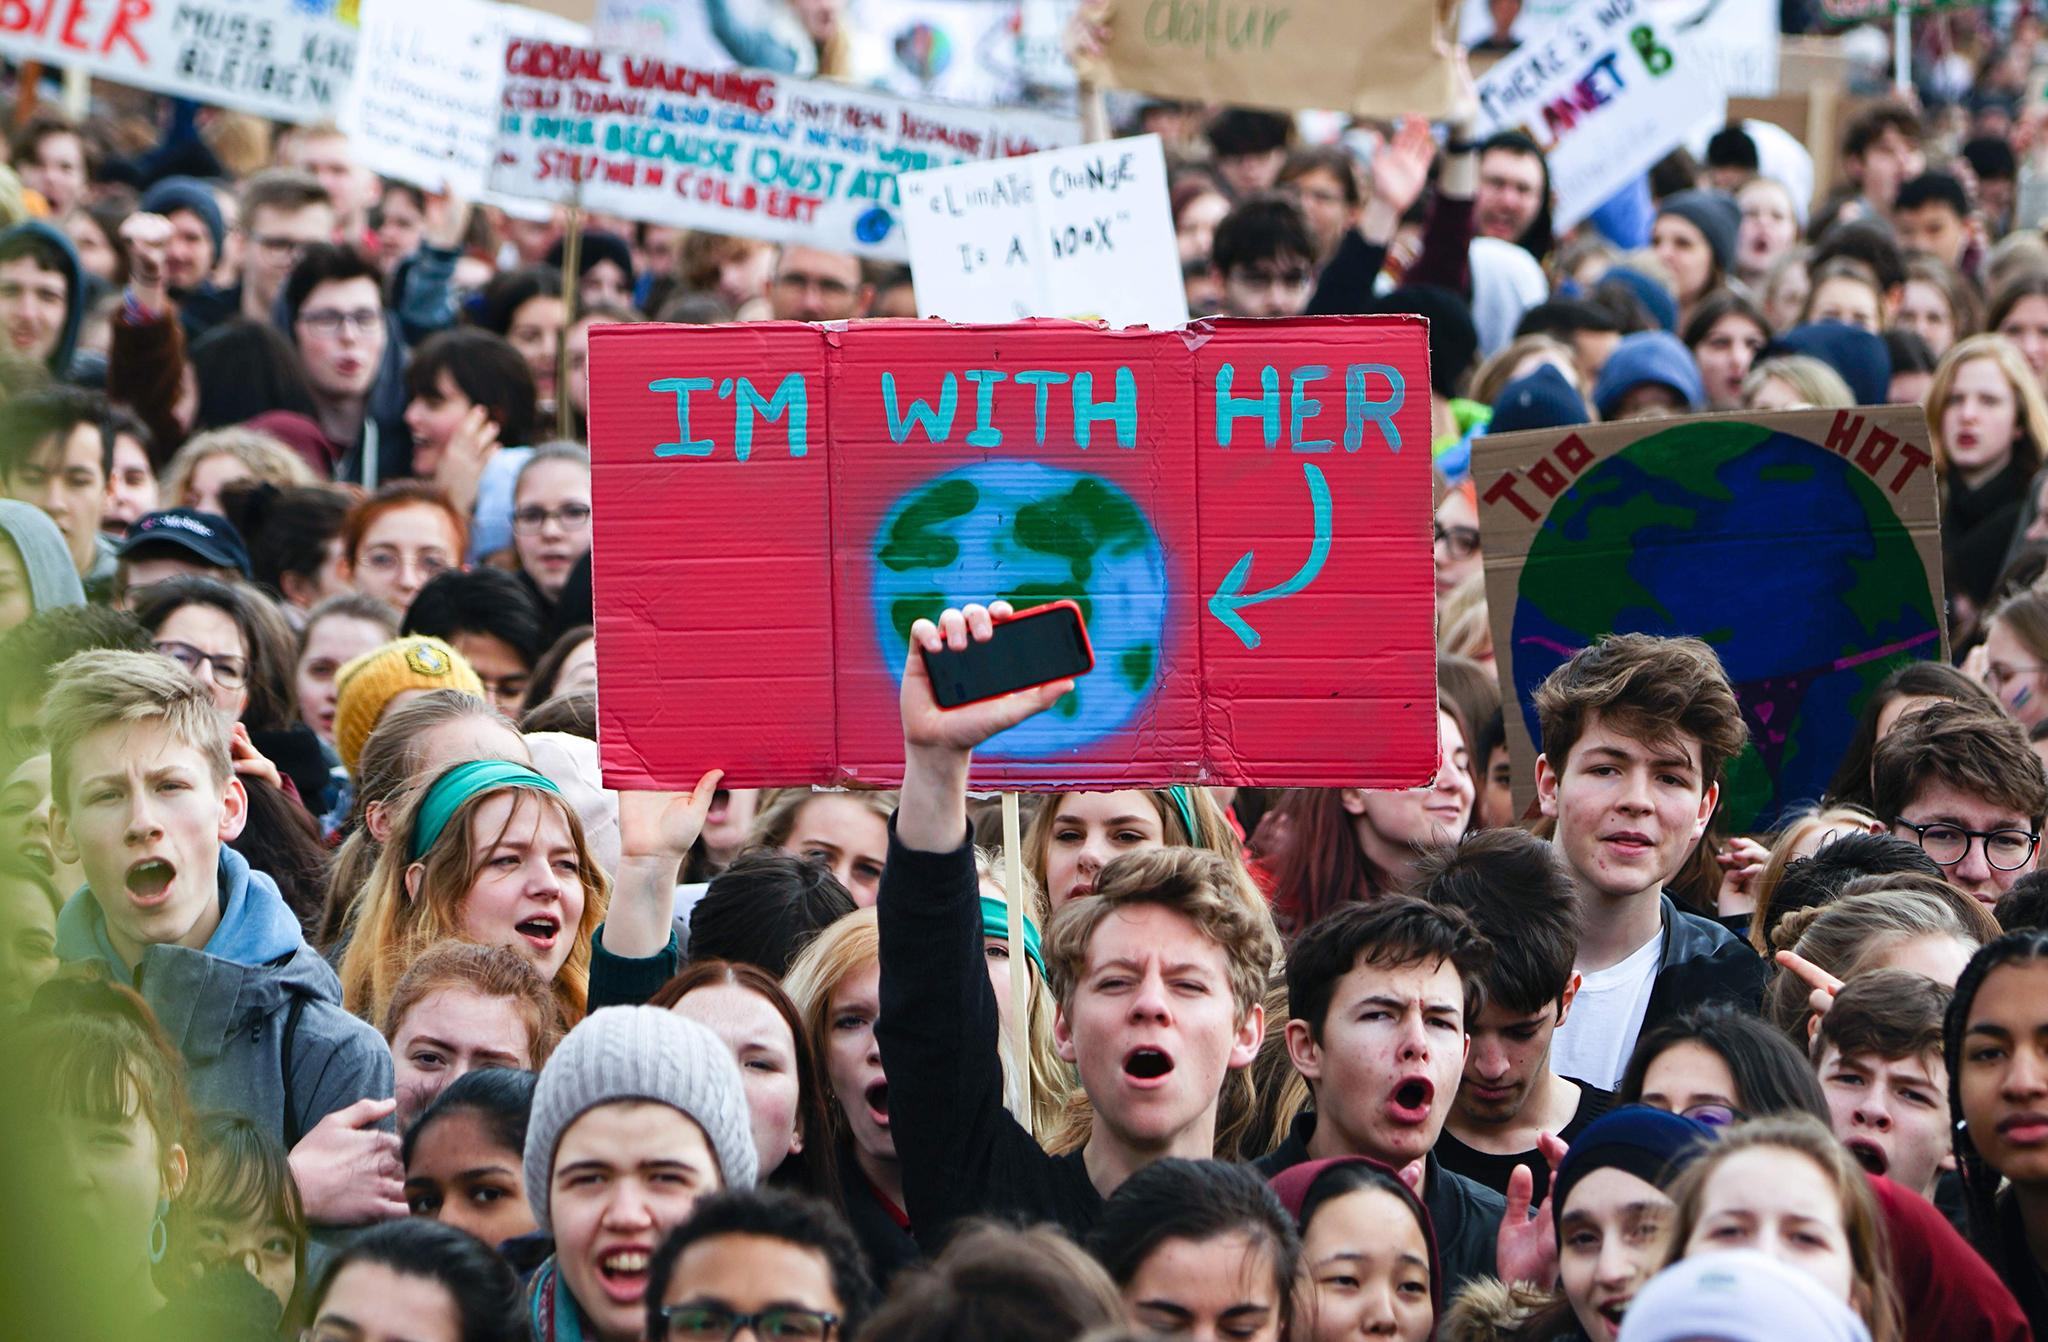 Ahead of the next climate strikes, this is how teachers can support their pupils and mobilise for action